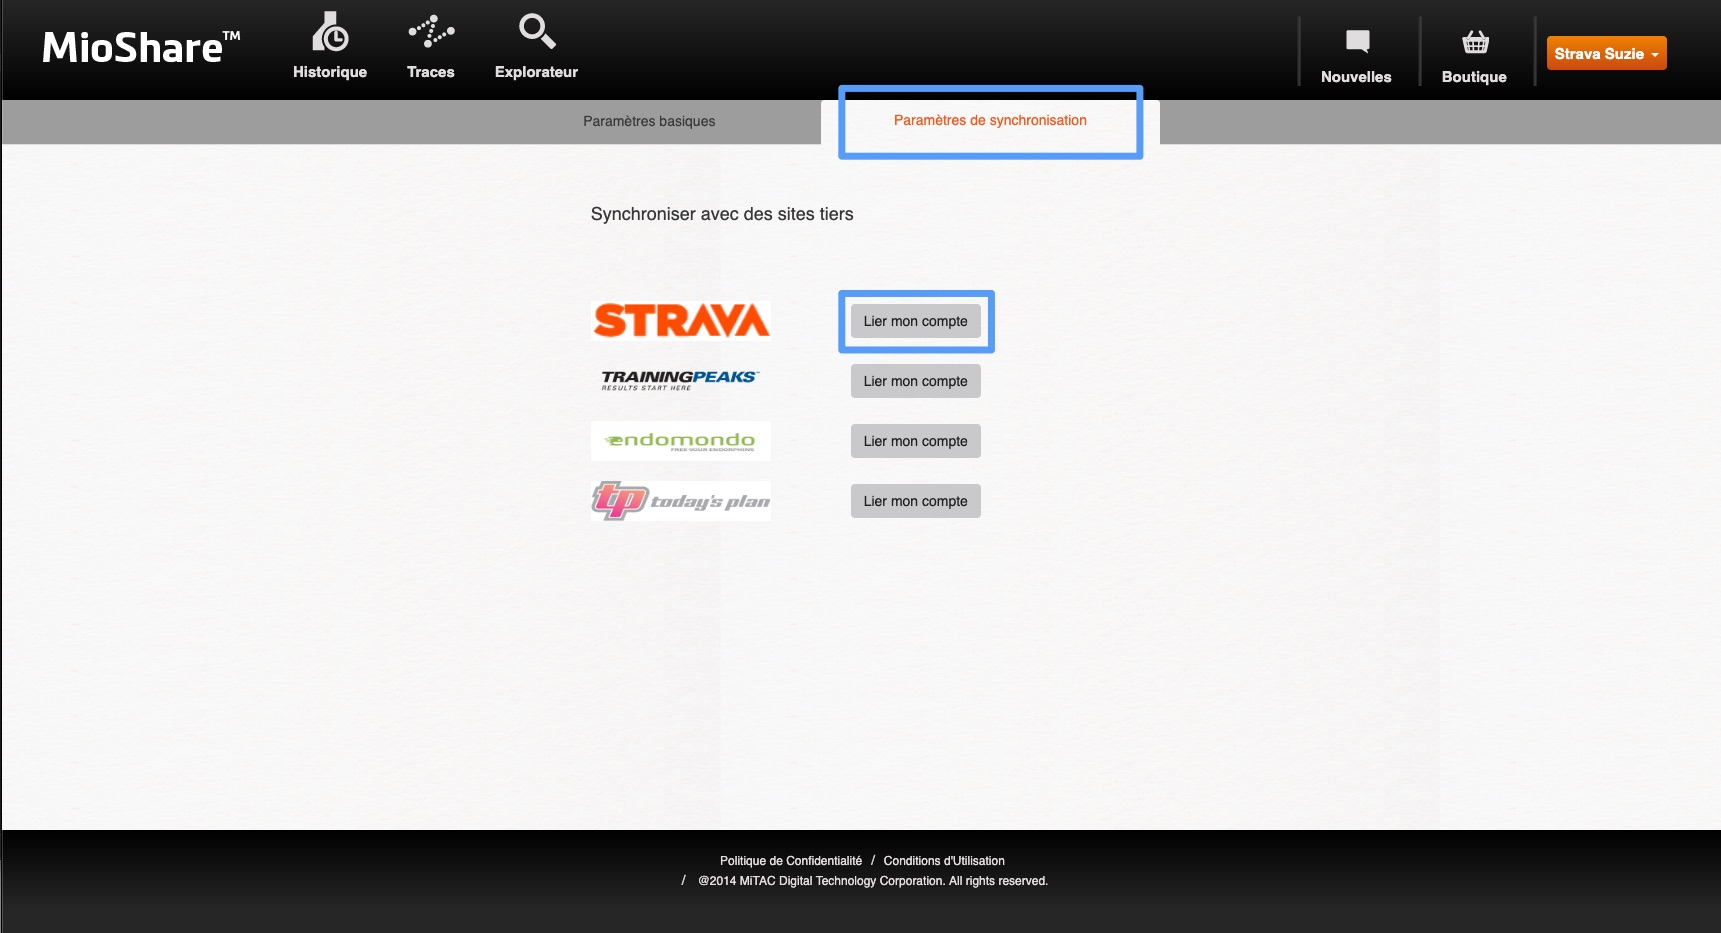 Welcome_to_MioShare_and_French_and_https___www_strava_com_oauth_authorize_client_id_72_redirect_uri_http___link_mioshare_com_strava_auth_TnR85JdqEP_d90Wh42fXbmi0X5z33mTxbHy1VJOBCLA_3D_scope_view_private_write_state_TnR85JdqEP_d90Wh42fXbmi0X.jpg